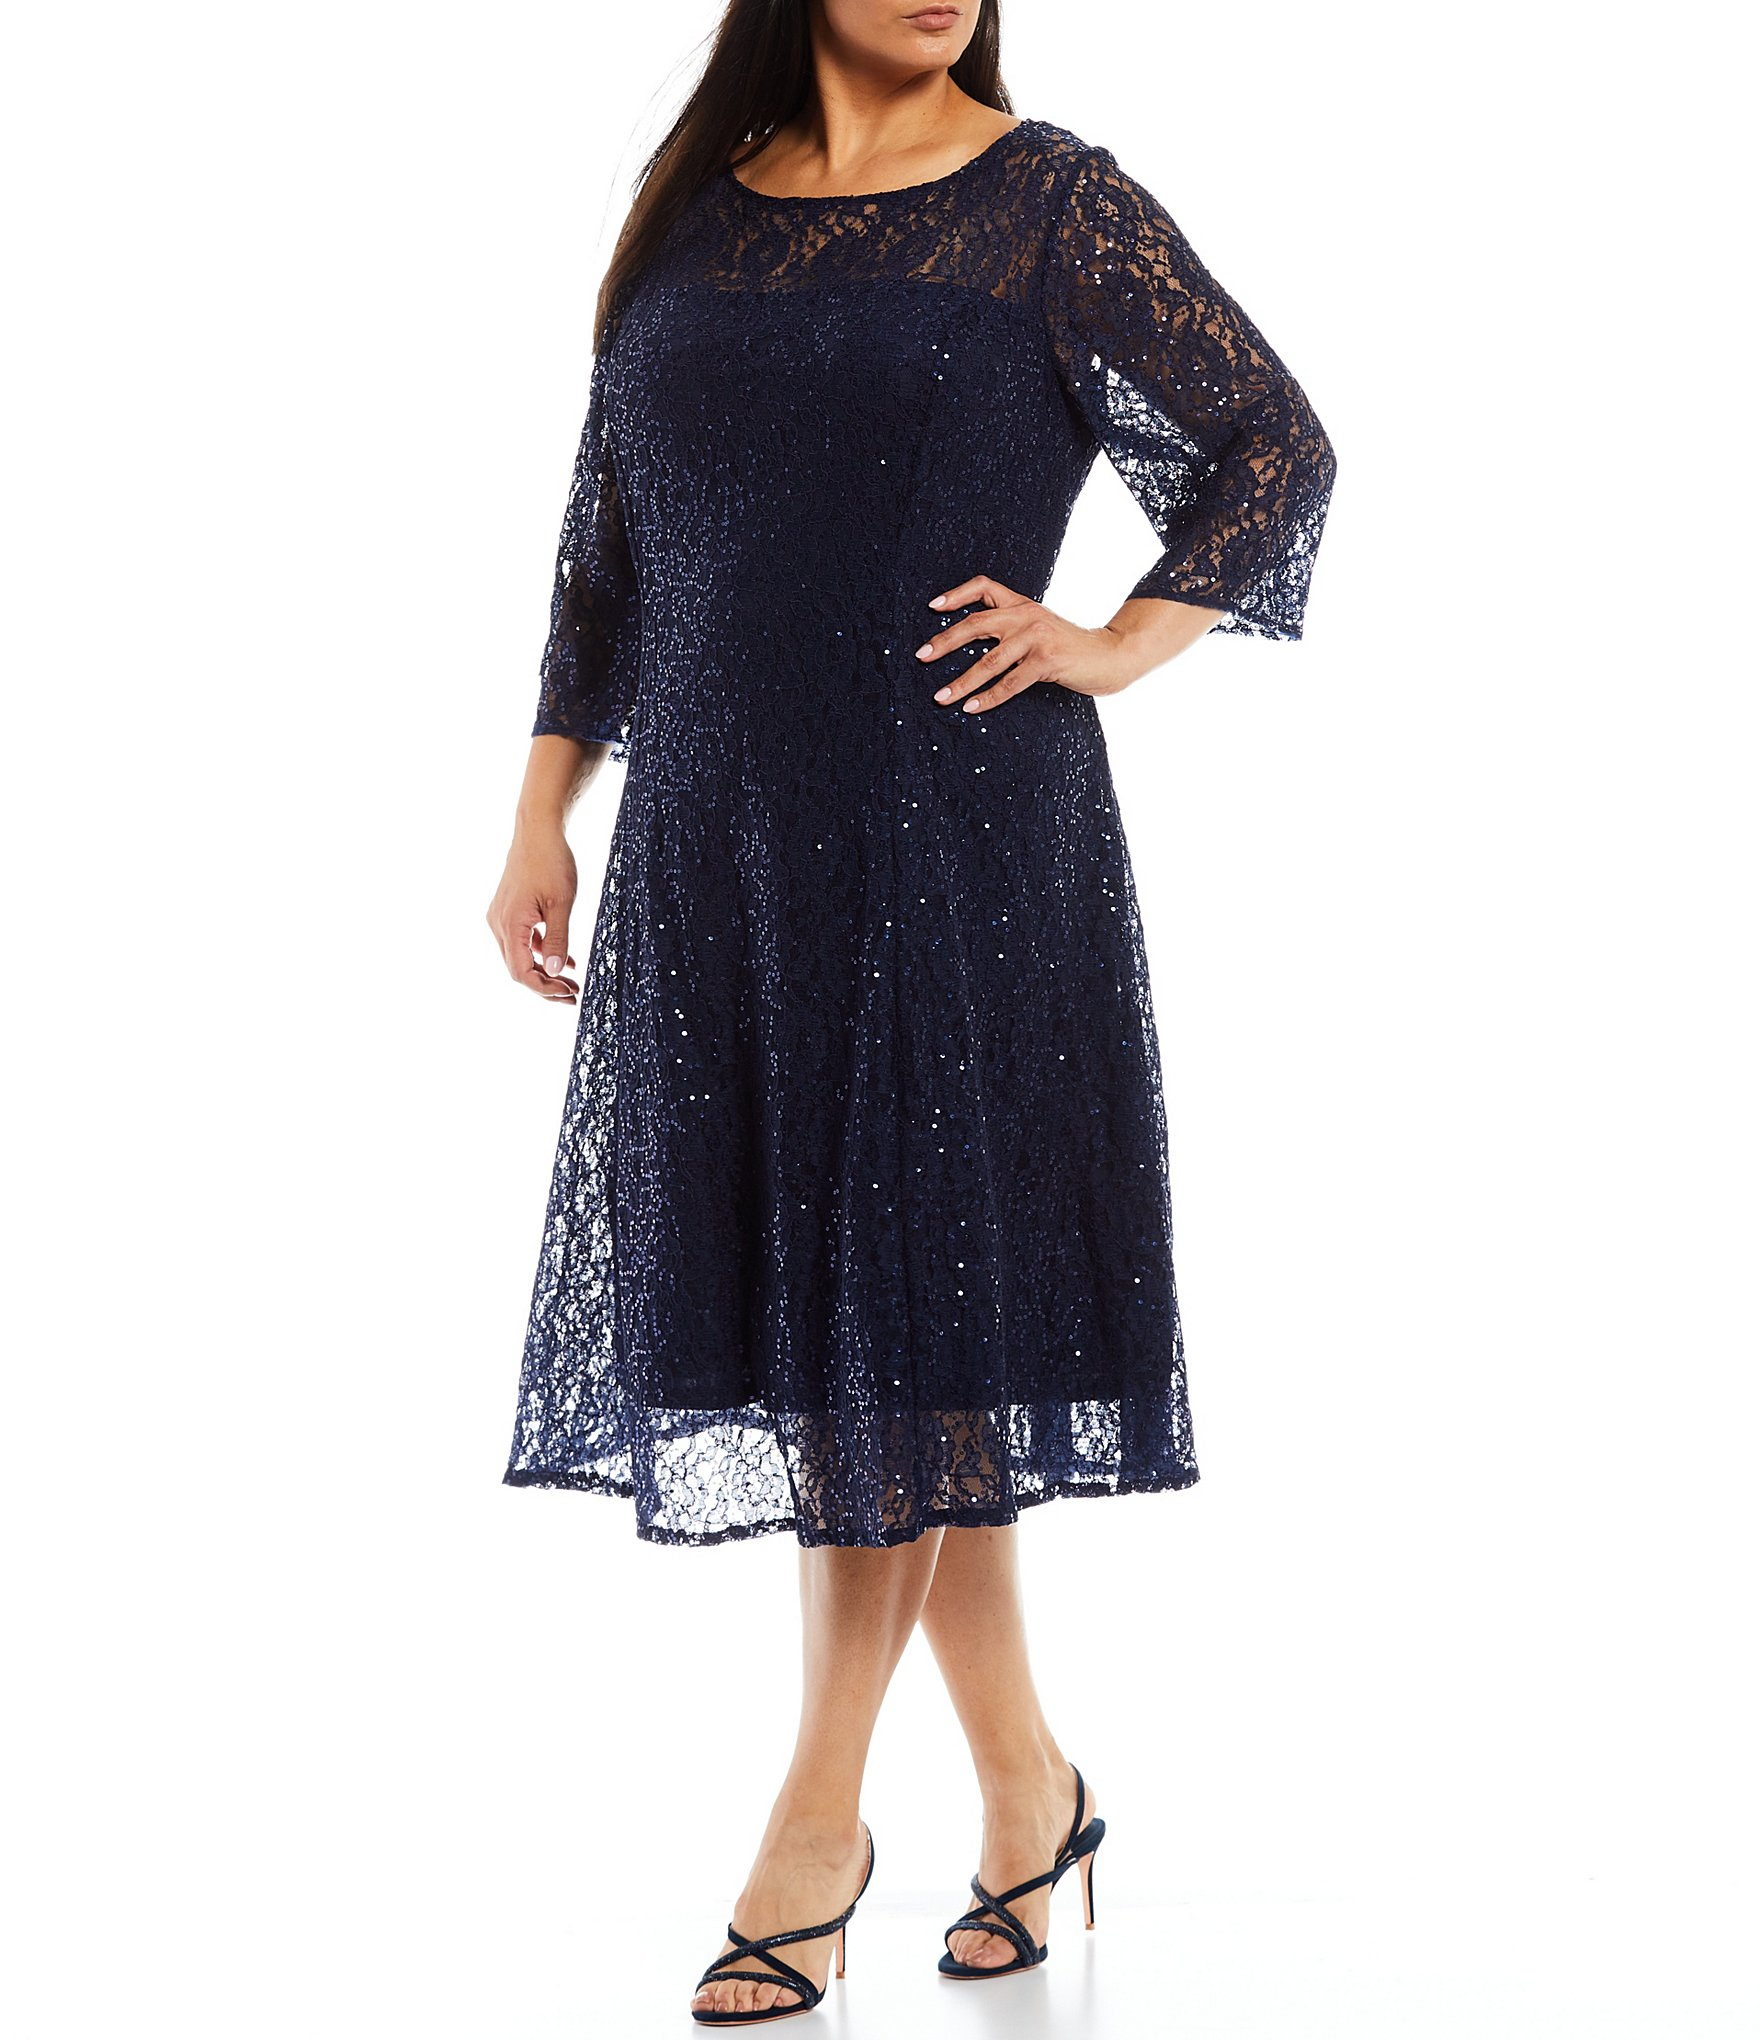 Ignite Evenings Plus Size 3/4 Sleeve Sequin Lace Fit and Flare Dress